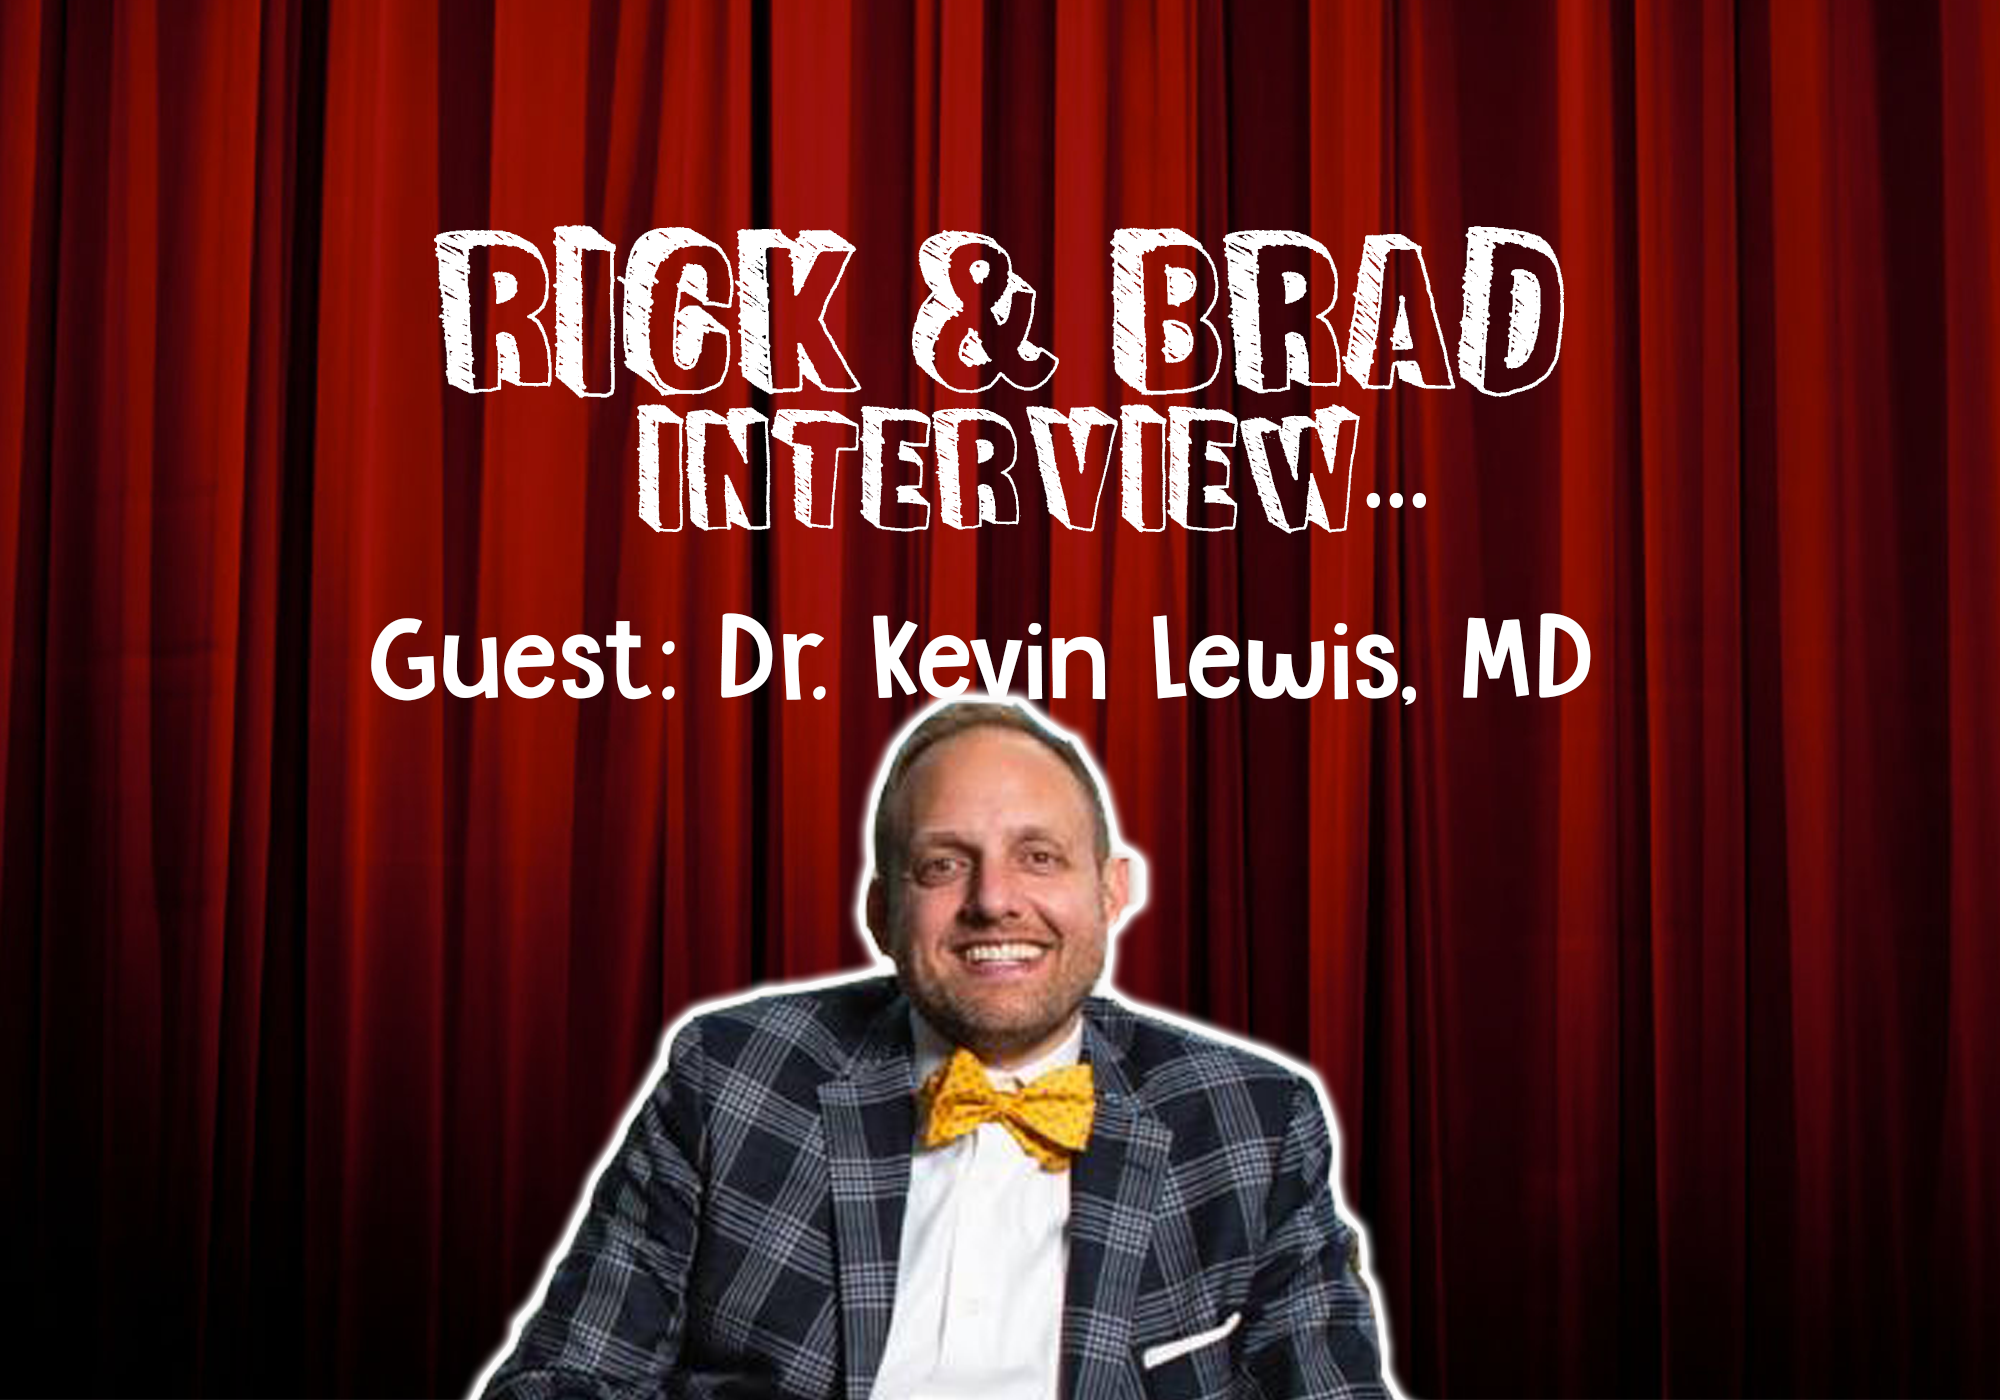 [PODCAST] Vaccination Discussion with Dr. Lewis